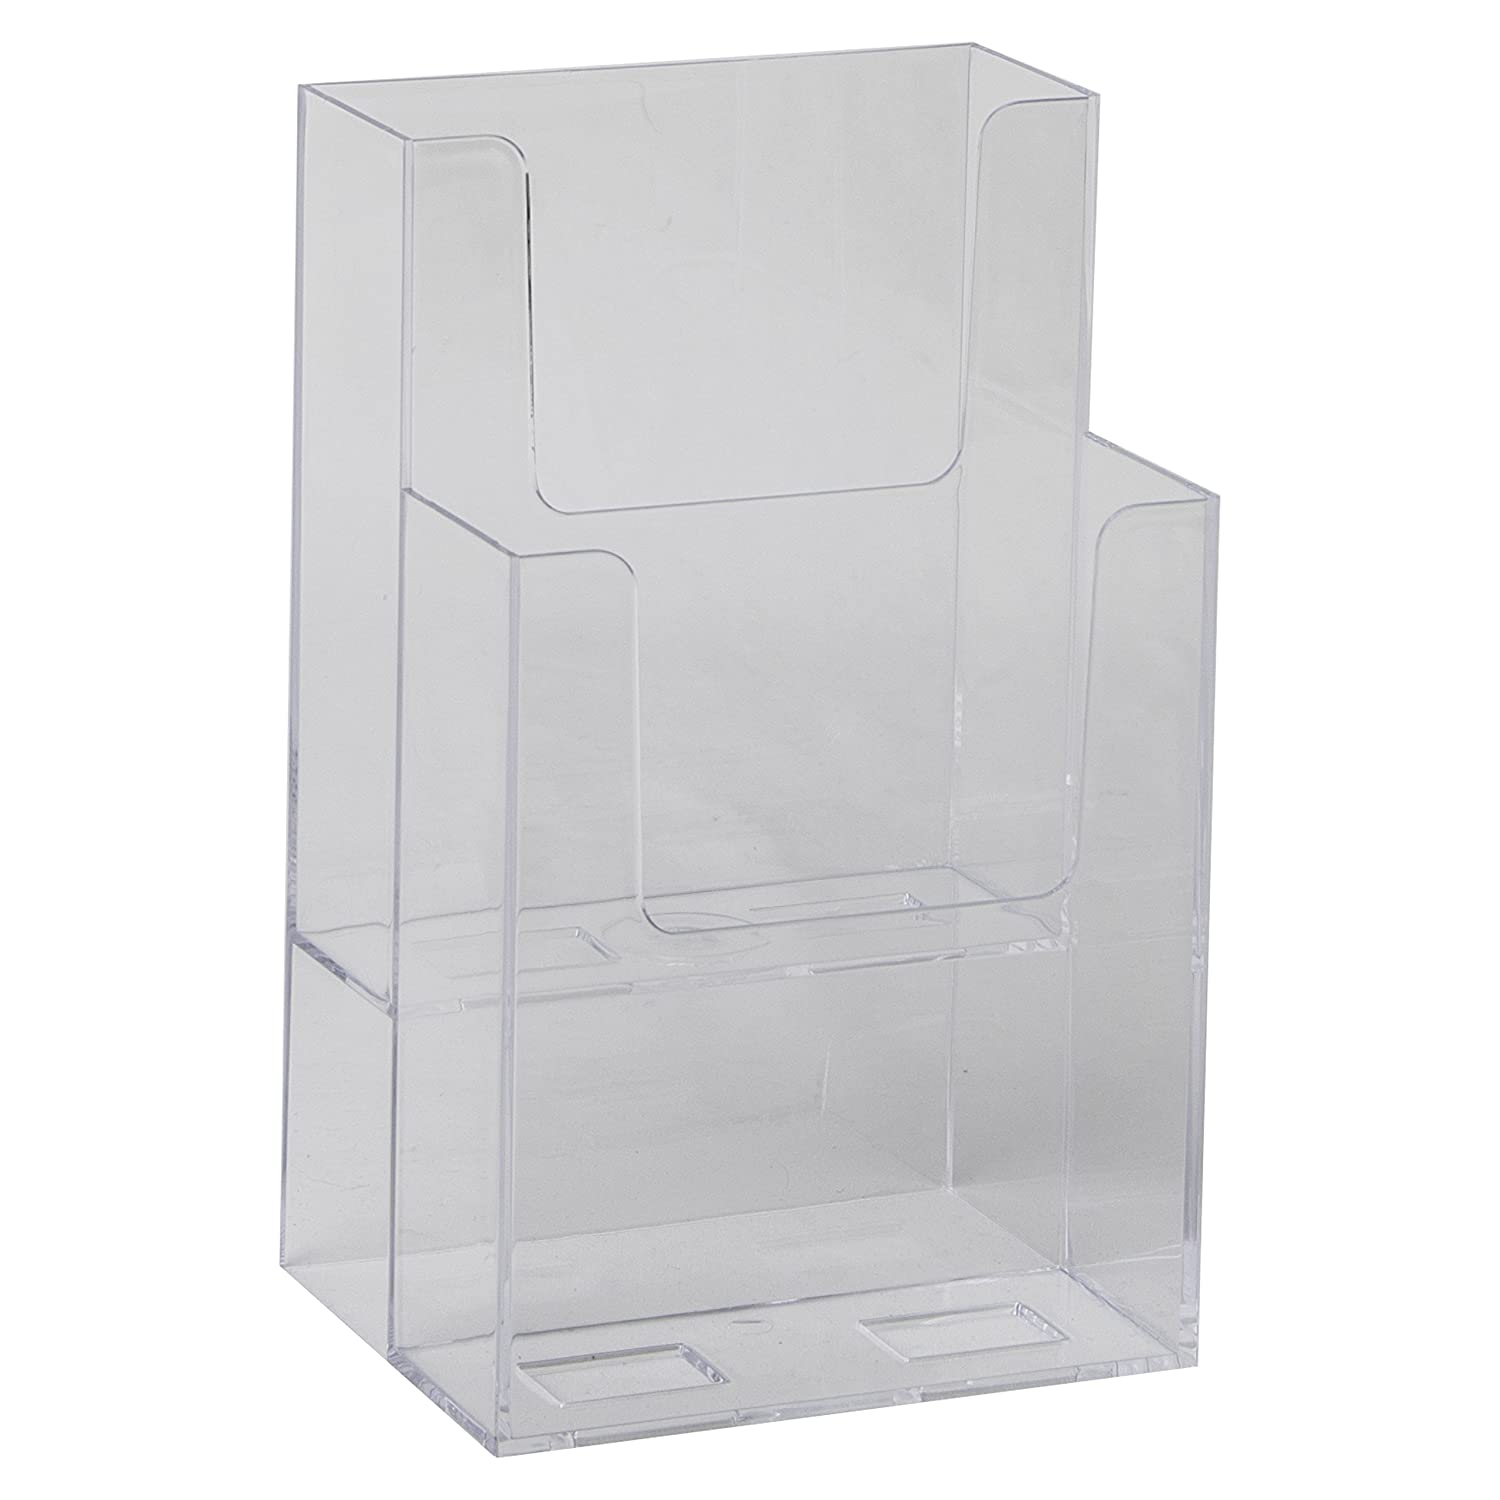 Amazon Clear Ad LHF S102 Acrylic Slant Back 2 Tier Trifold Brochure Display Plastic Literature Holder for Flyers Booklets Bills Mail